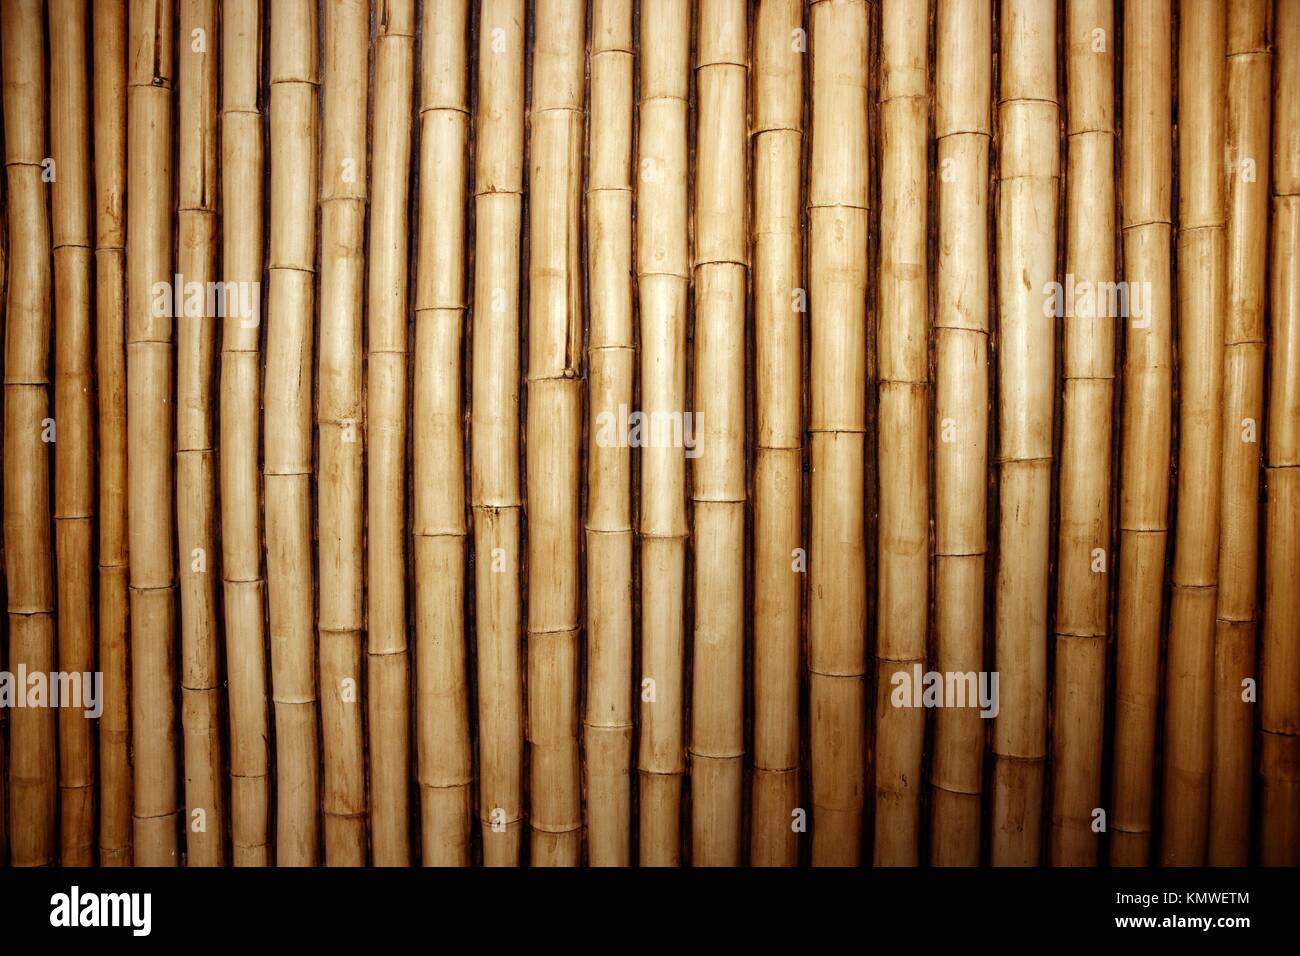 823d96d0374c Bamboo cane row arrangement background pattern Stock Photo ...